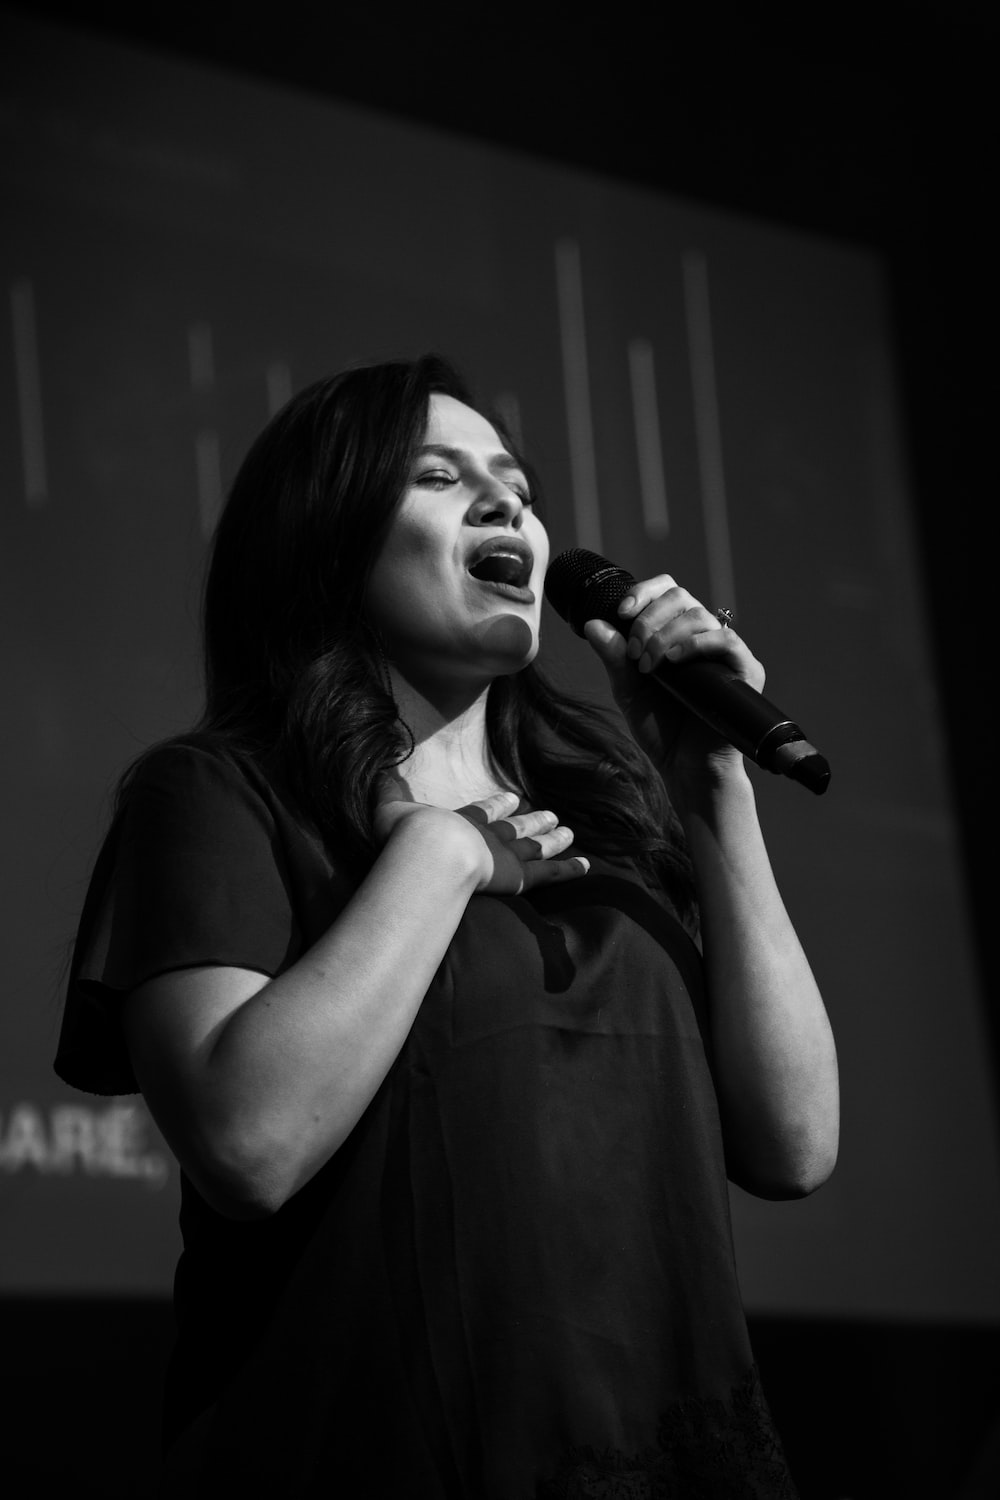 grayscale photography of woman singing